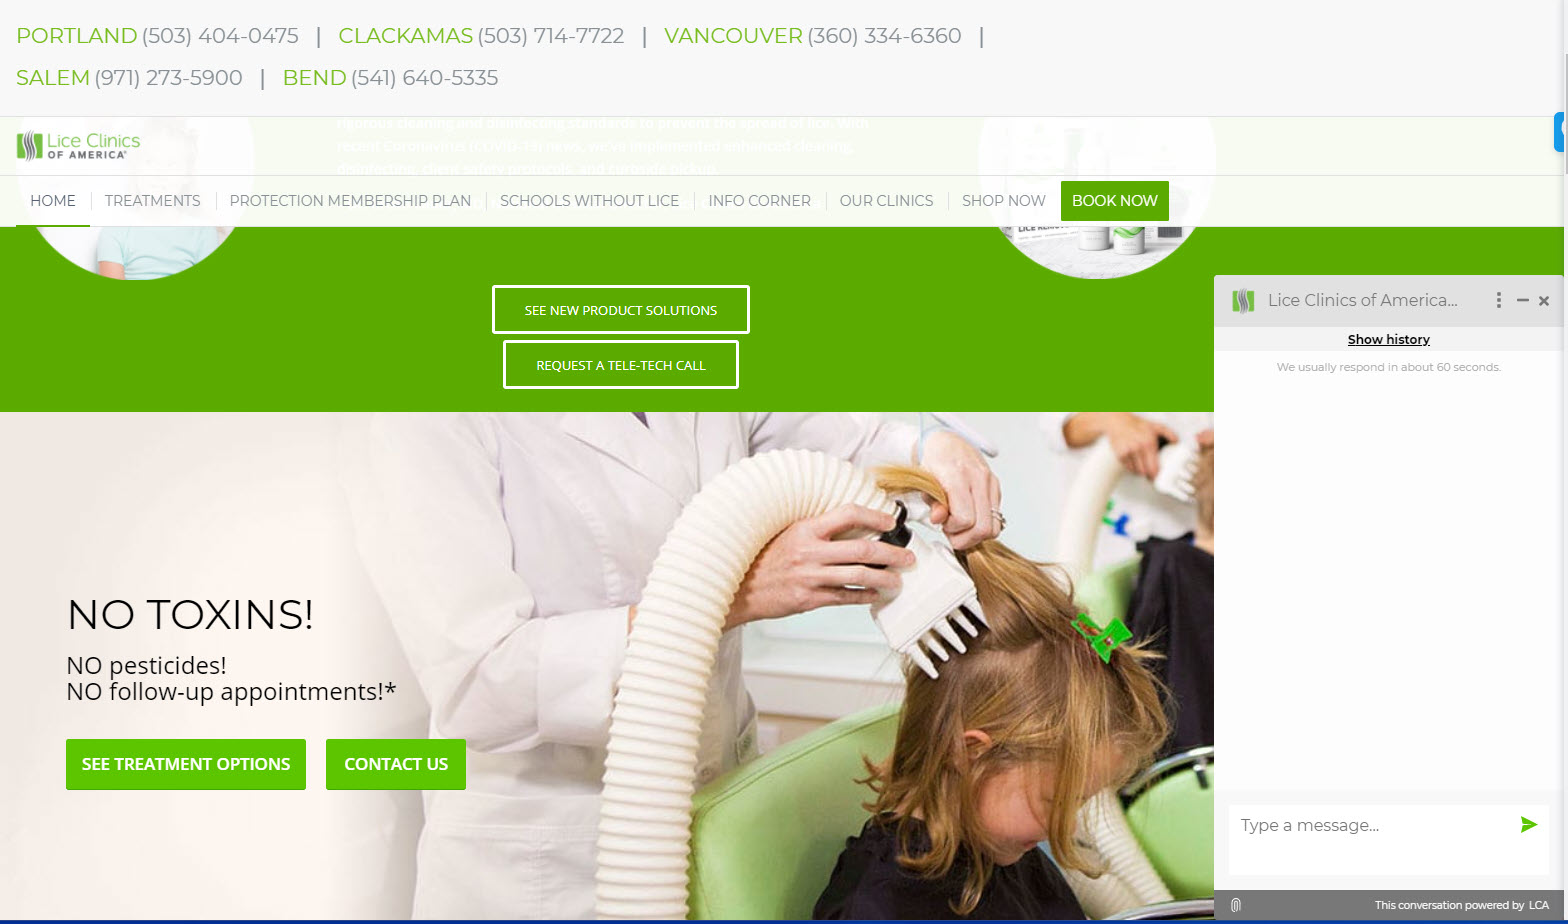 Expanded Rake chat widget on Lice Clinic of America Oregon locations website